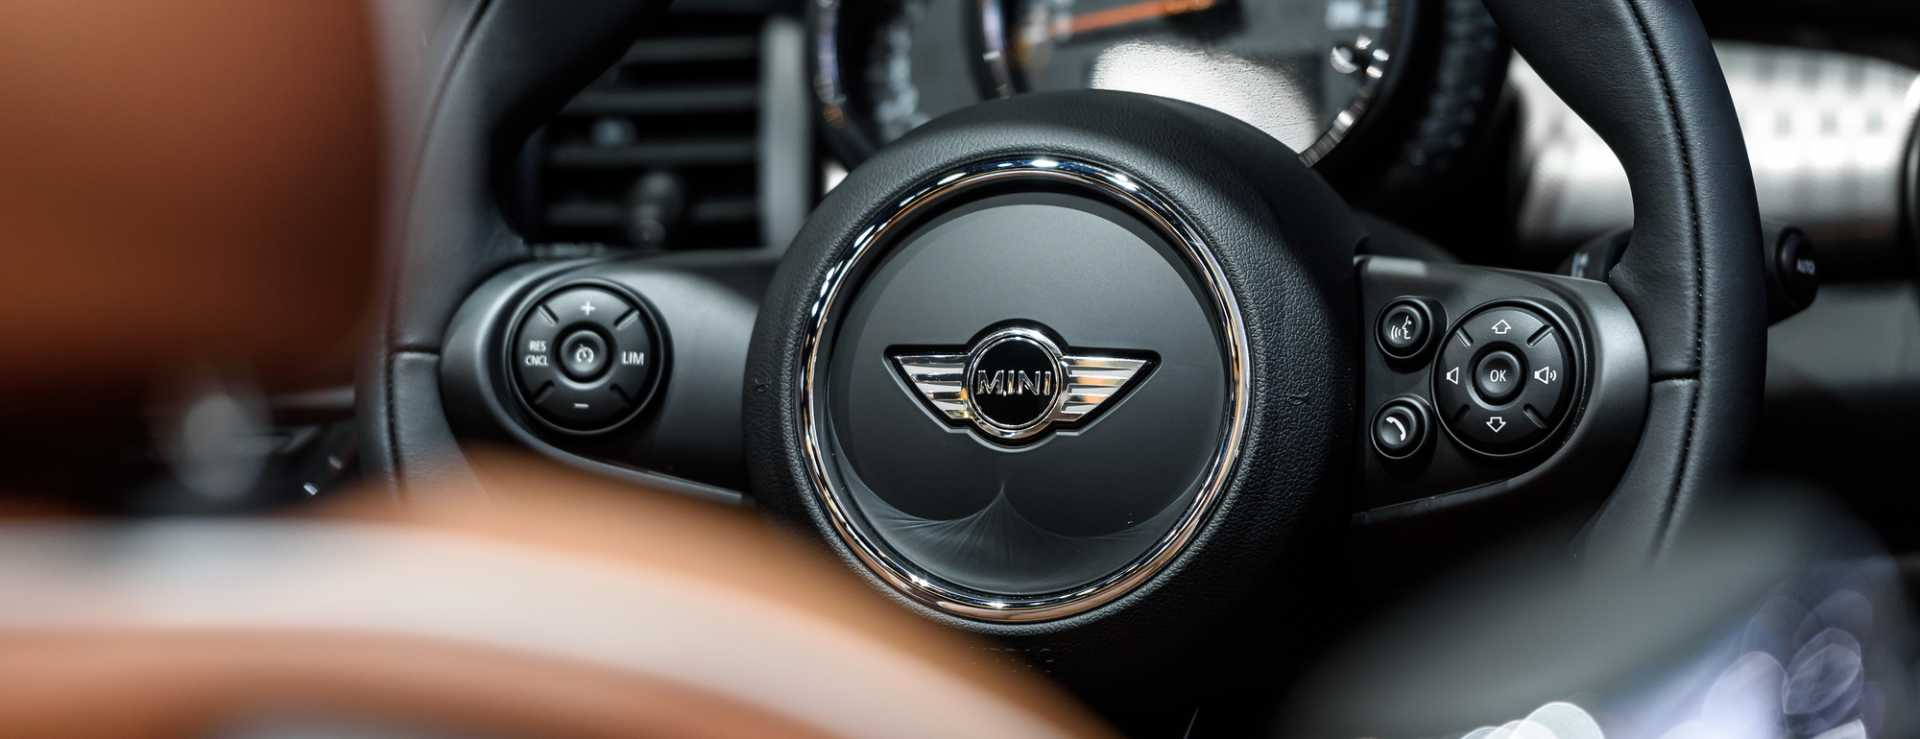 Inside of Mini Cooper S - image courtesy of Depositphotos.